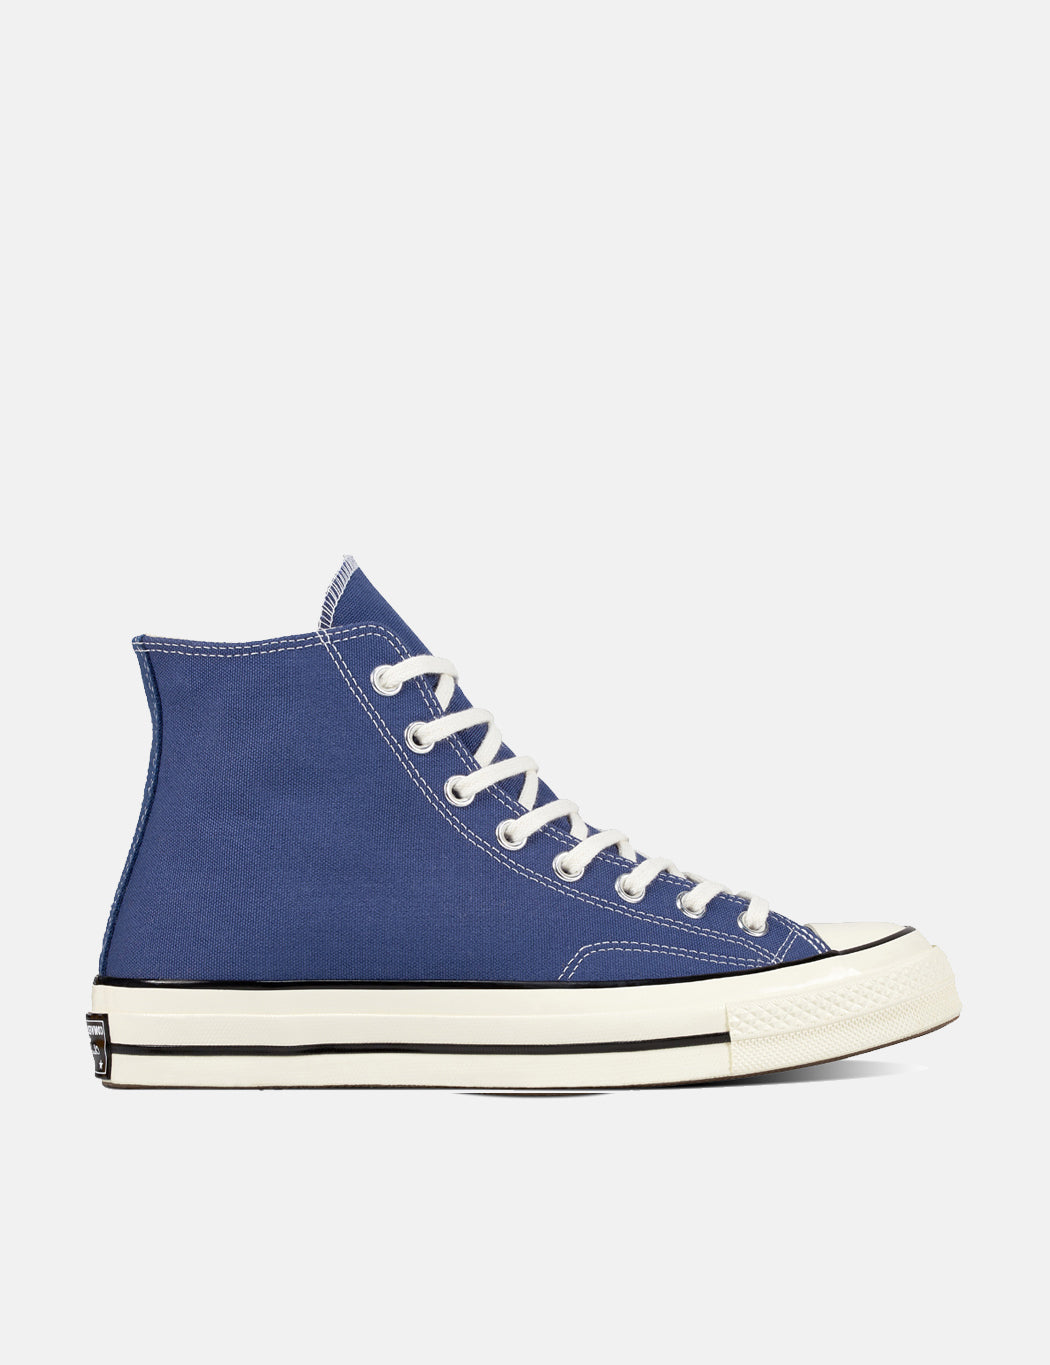 6f35f2e18f3 Converse 70 s Chuck Taylor Hi 162055C (Canvas) in True Navy Blue